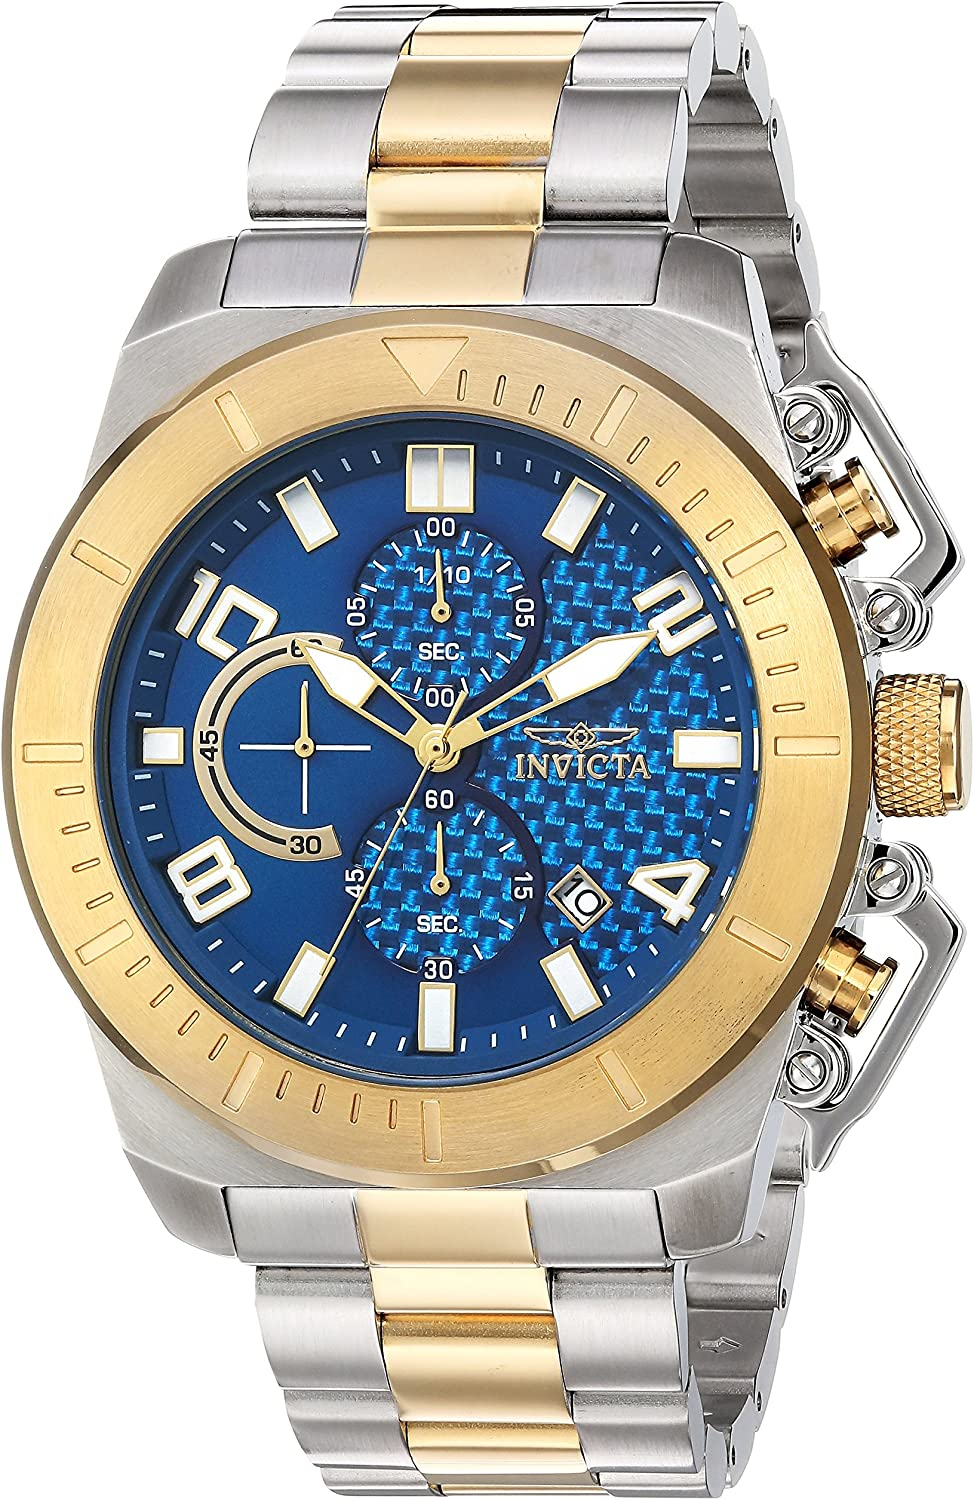 Invicta Men s Pro Diver Japanese-Quartz Watch with Stainless-Steel Strap, Two Tone, 10 Model 23407